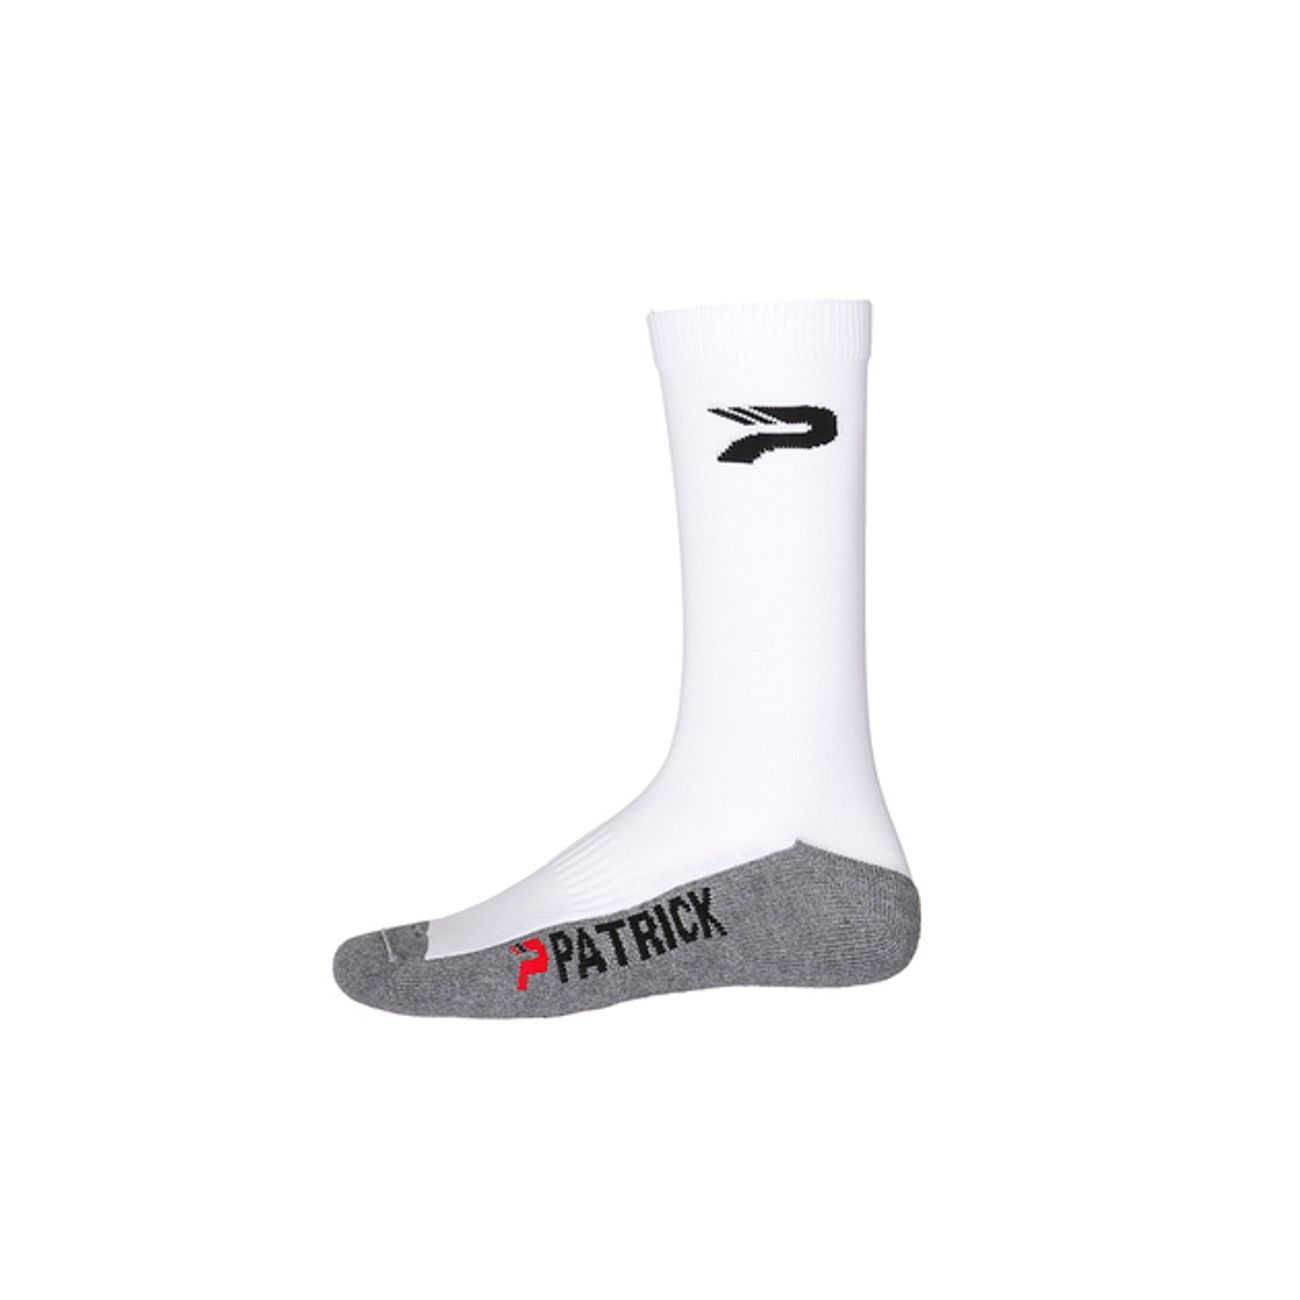 Homme Chaussettes Patrick Fitness Adulte Almeria 1TlFKJc